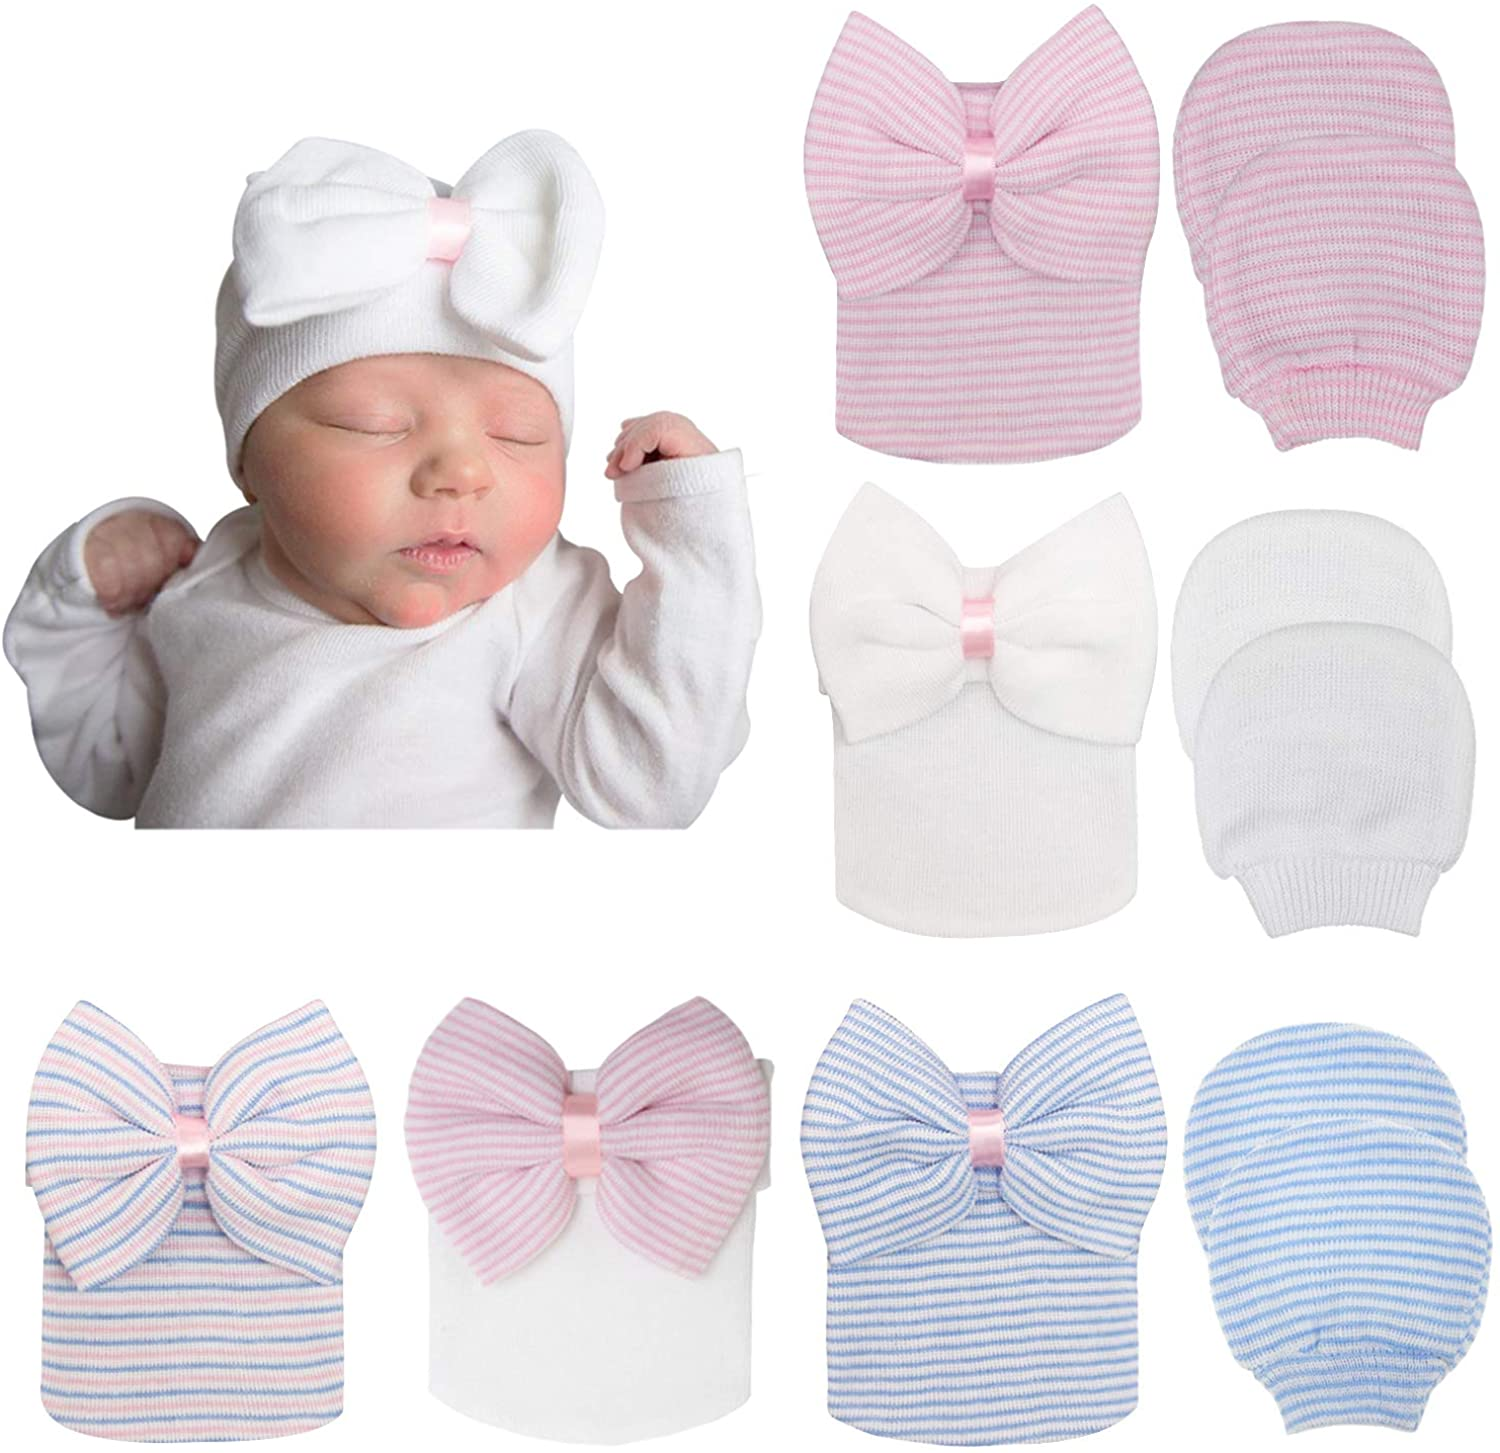 BQUBO Newborn Baby Caps Mittens for Baby Girls Set Hospital Hat Beanie Infant Hats with bow Baby Scratch Mitten Gloves: Clothing